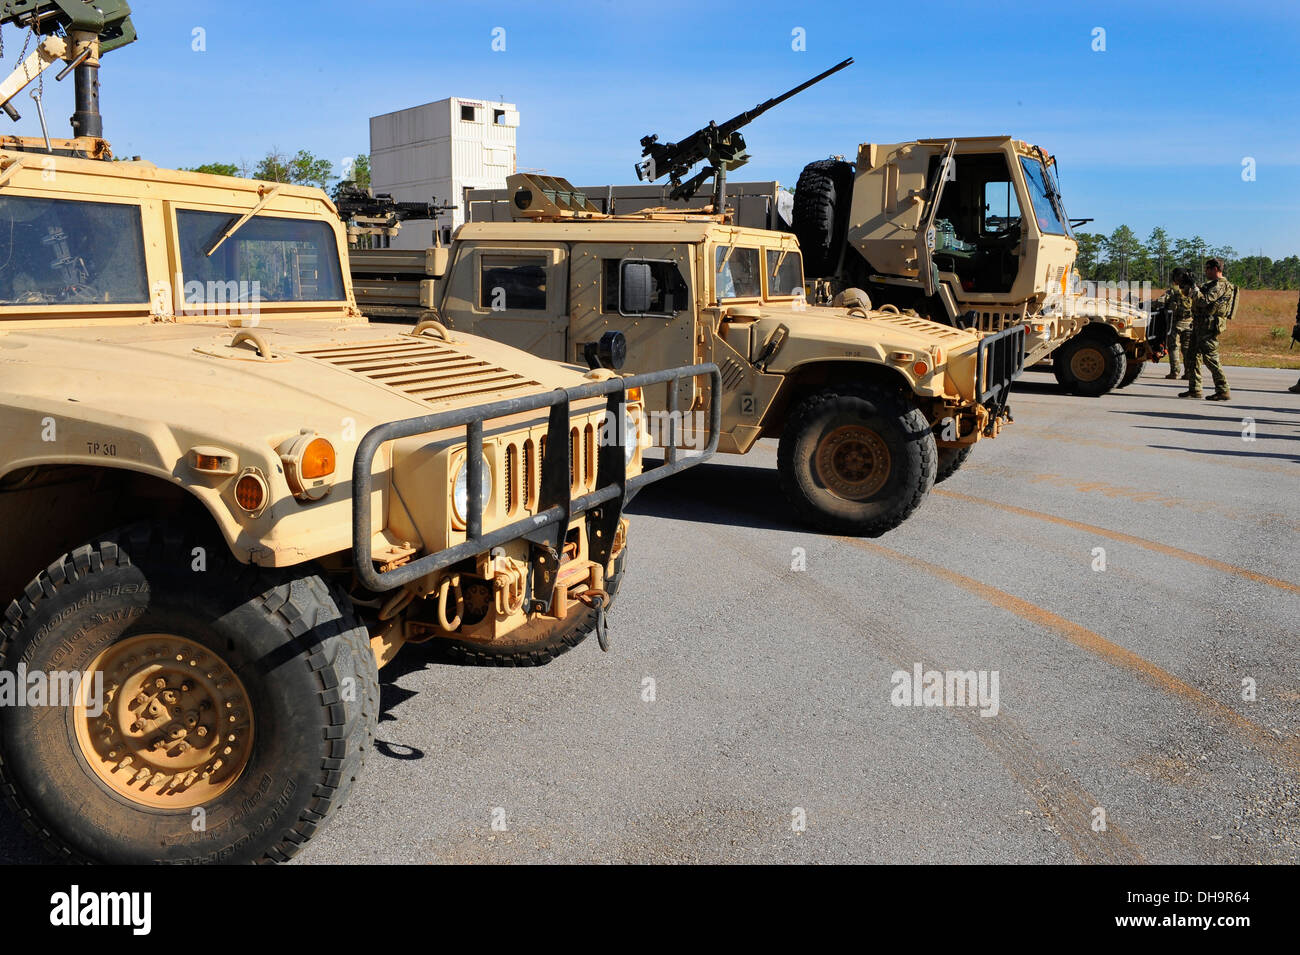 Humvees are parked on Eglin Range, Eglin Air Force Base, Fla., Oct. 29, 2013 prior to the tactical training exercise. Hurlburt Field instructors assisted and trained members of the army during a tactical training exercises. - Stock Image